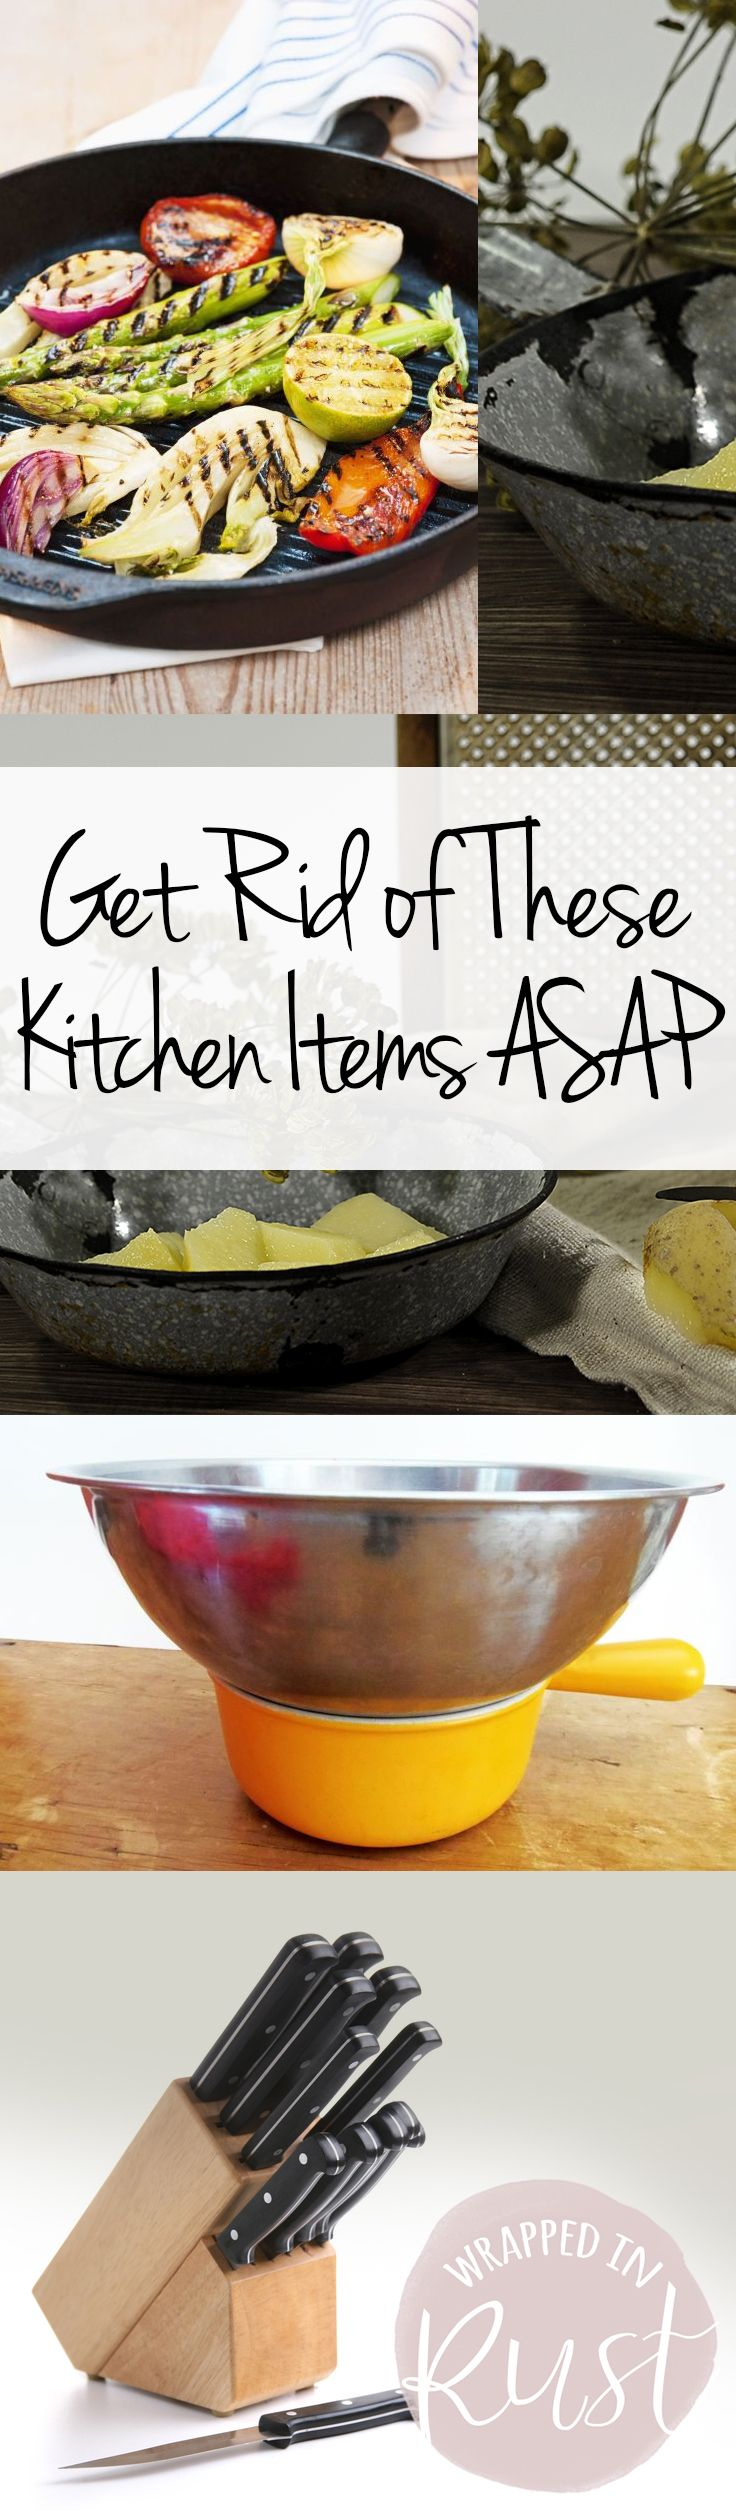 Get Rid of These Kitchen Items ASAP| Kitchen Organization, Kitchen Organization Hacks, How to Organize and Declutter Your Kitchen, Declutter Your Kitchen, Kitchen Organization, How to Declutter Your Home, Decluttering Your Home, Popular Pin